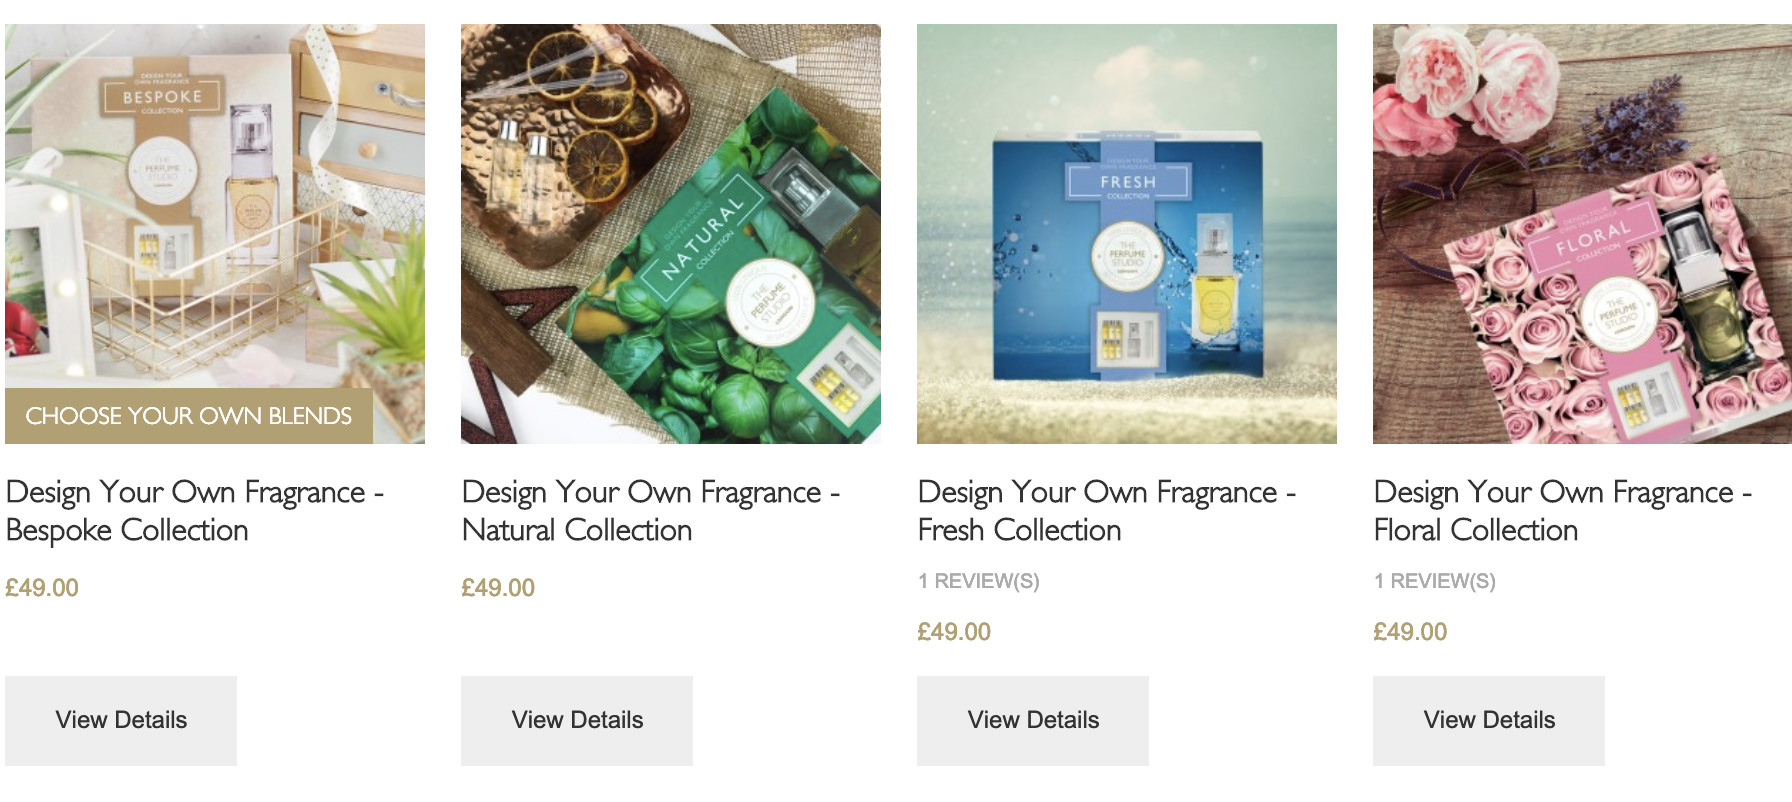 Fragrance Design Gift Sets